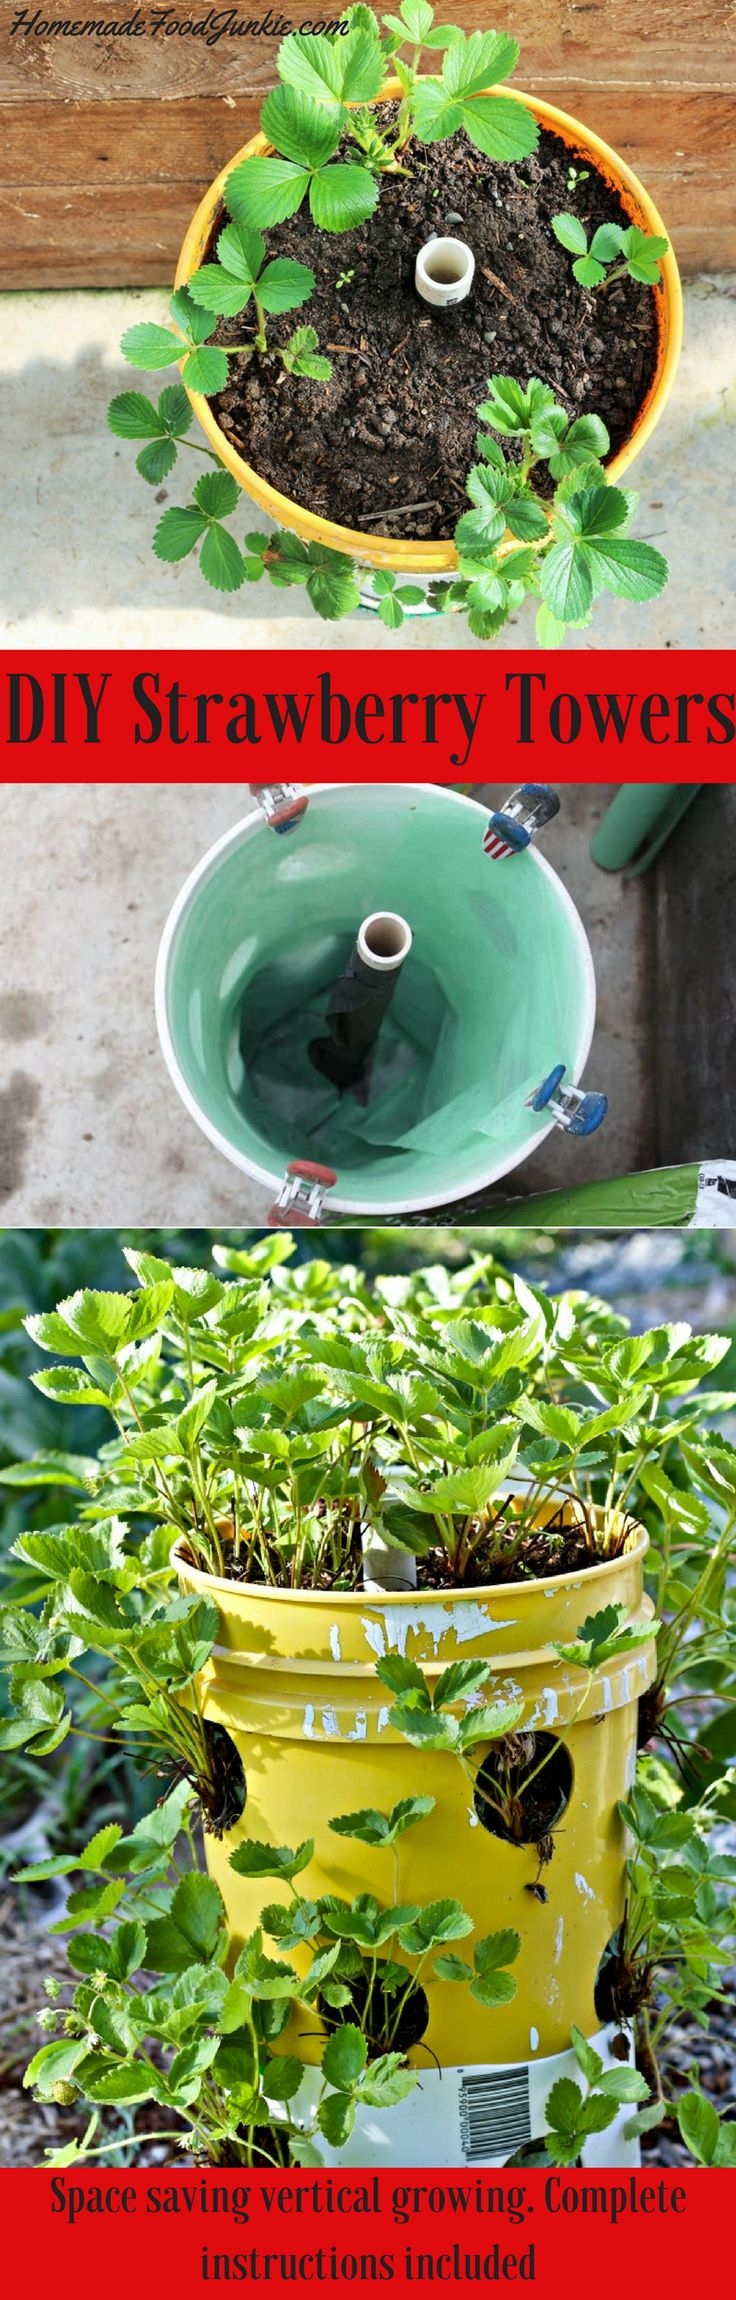 Growing strawberries in gutters diy idea - Diy Strawberry Towers To Manage And Control Strawberry Plants Small Towers Are Great For Small